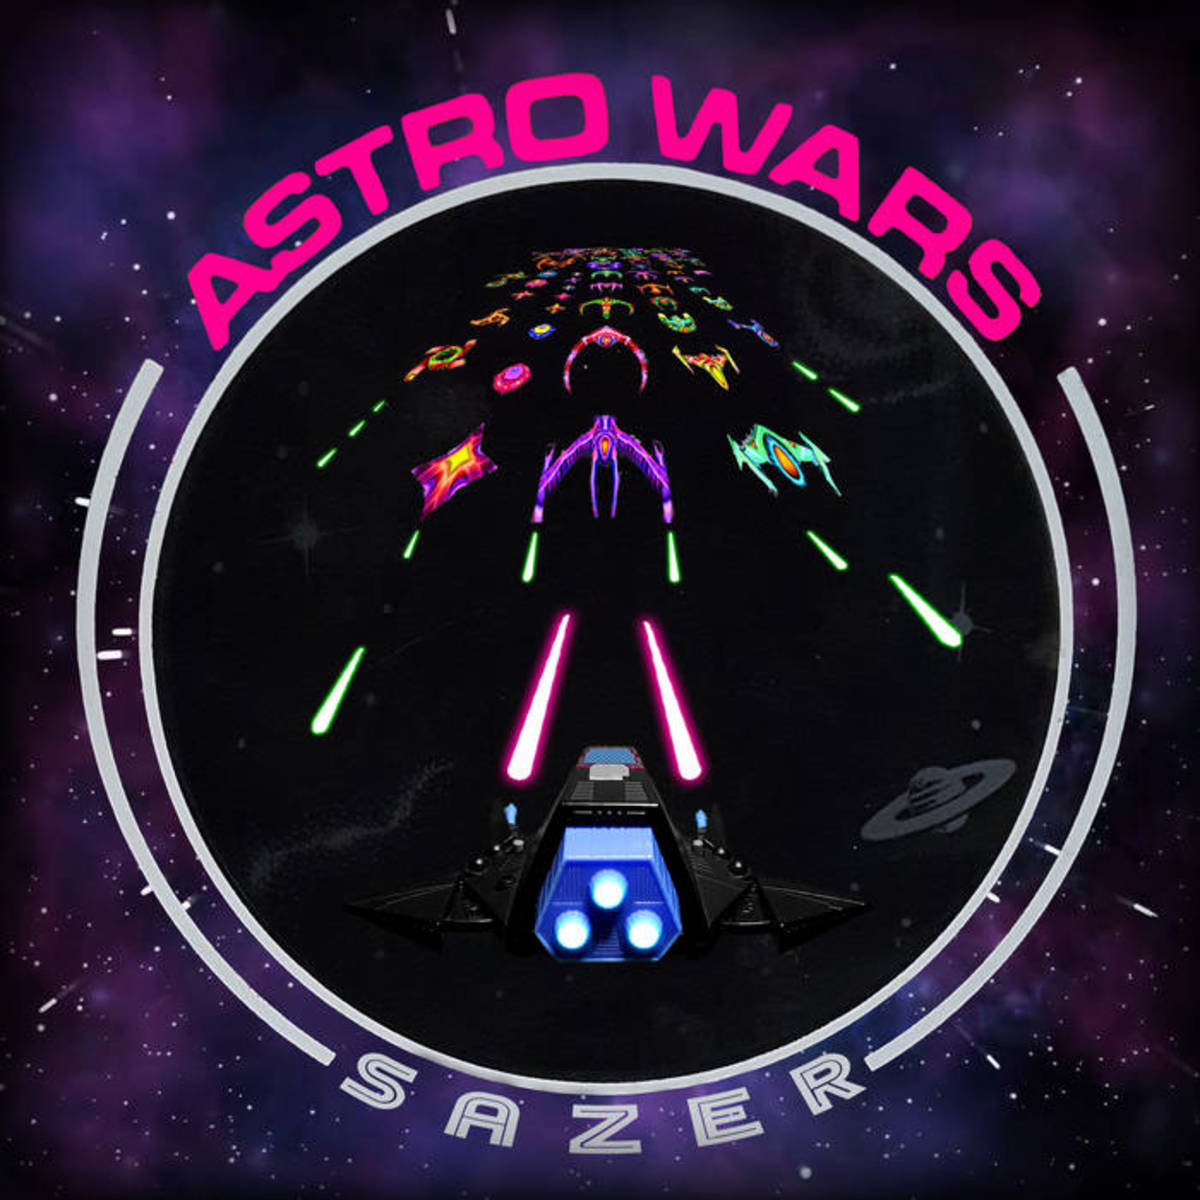 synth-album-review-astro-wars-by-s-a-z-e-r